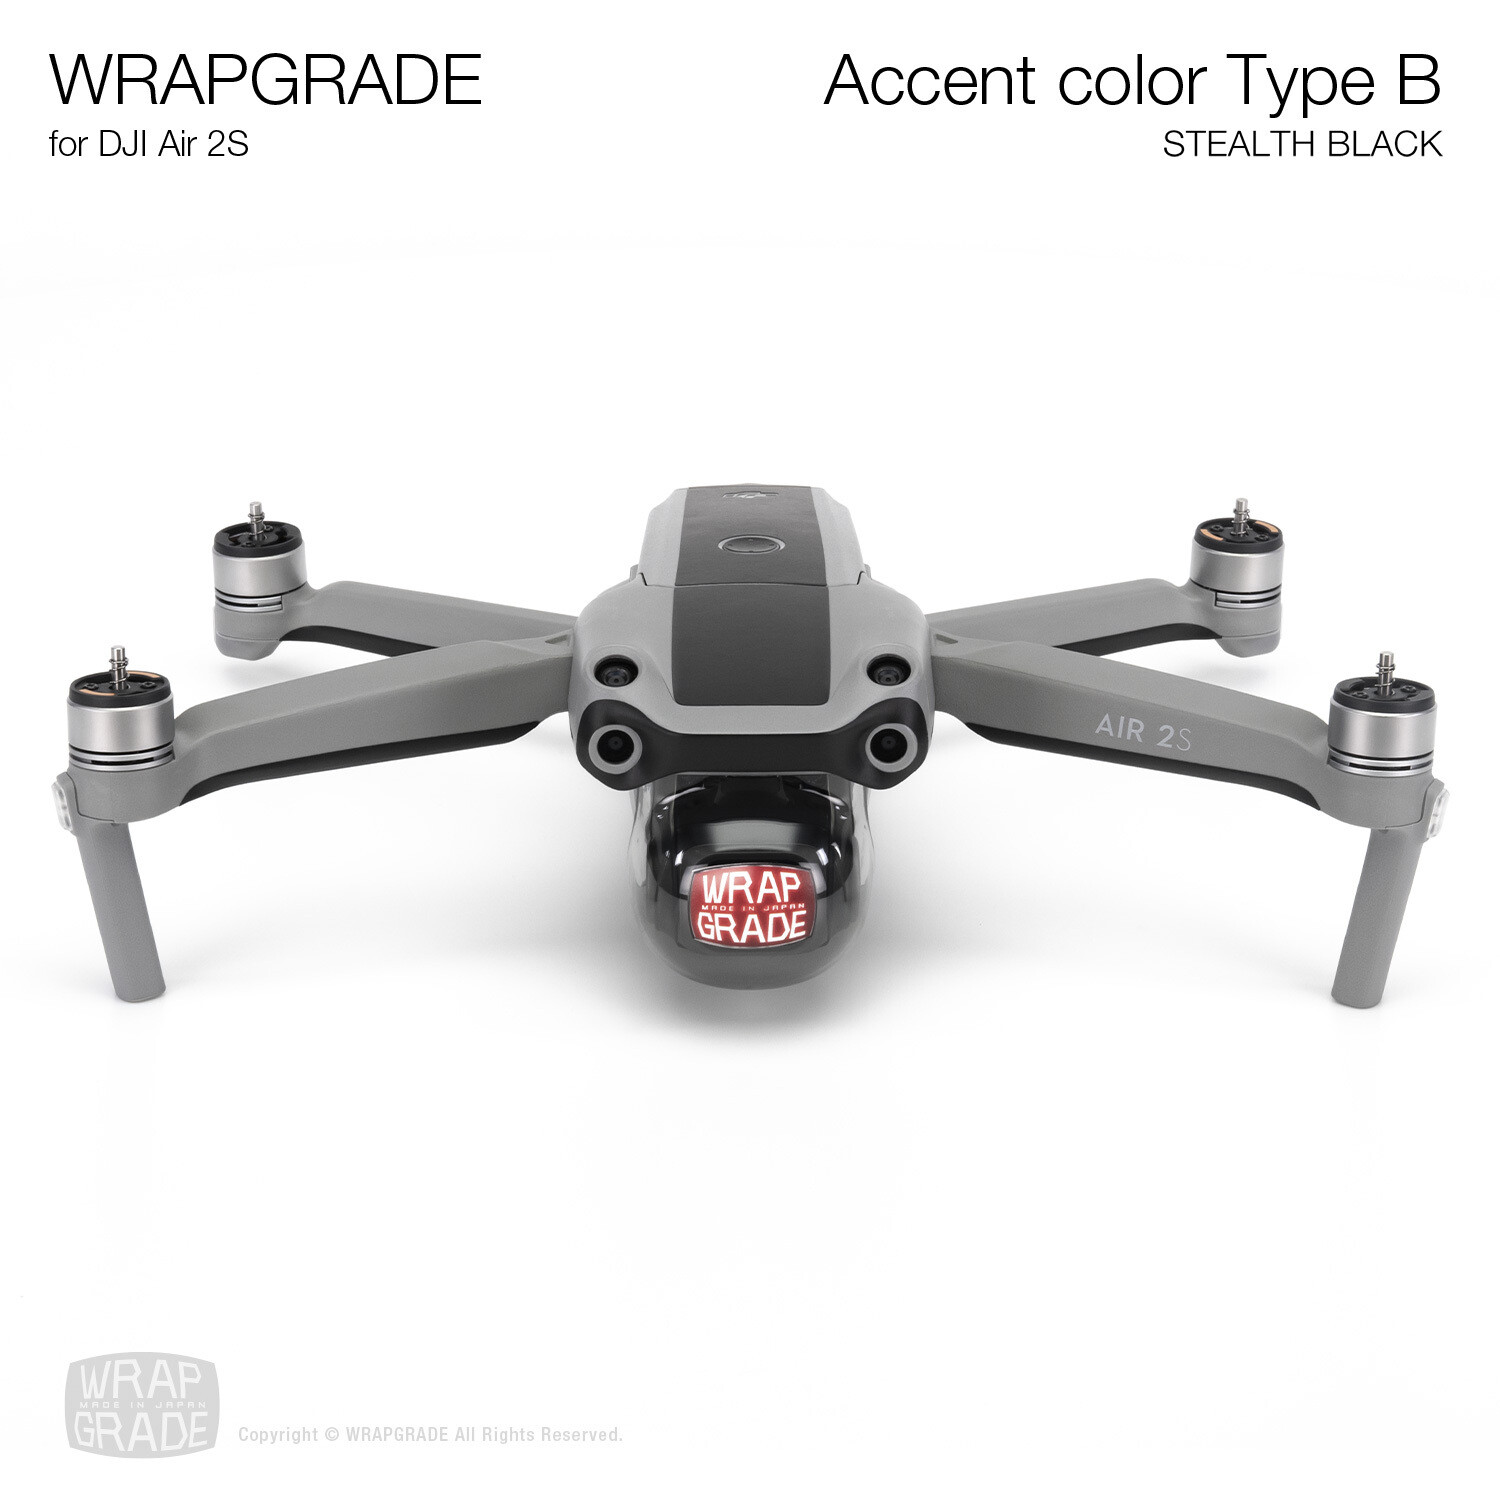 Wrapgrade Skin for DJI Air 2S | Accent Color B (STEALTH BLACK)